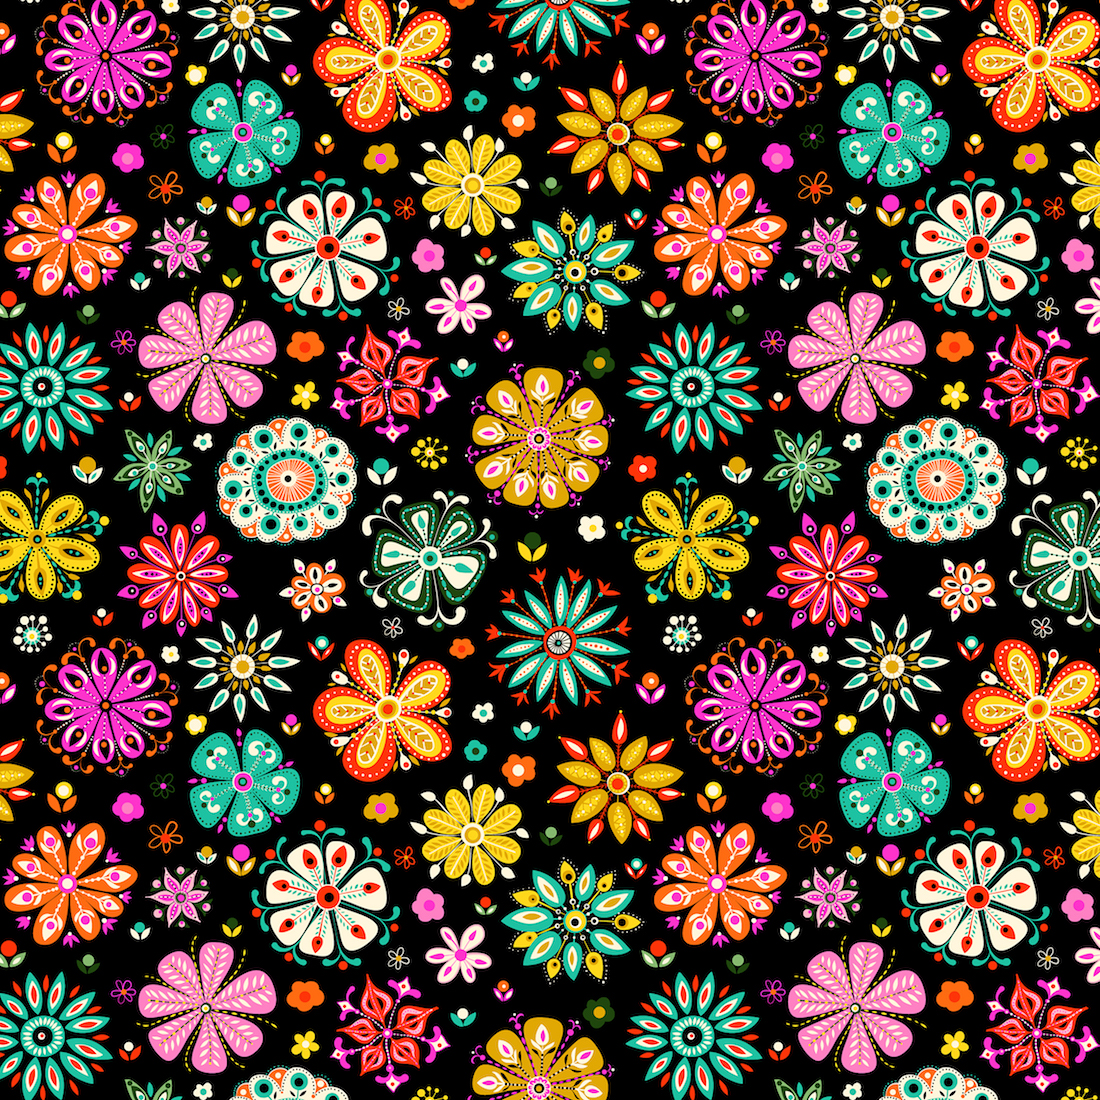 Make It Sell It Repeating Patterns In Adobe Illustrator